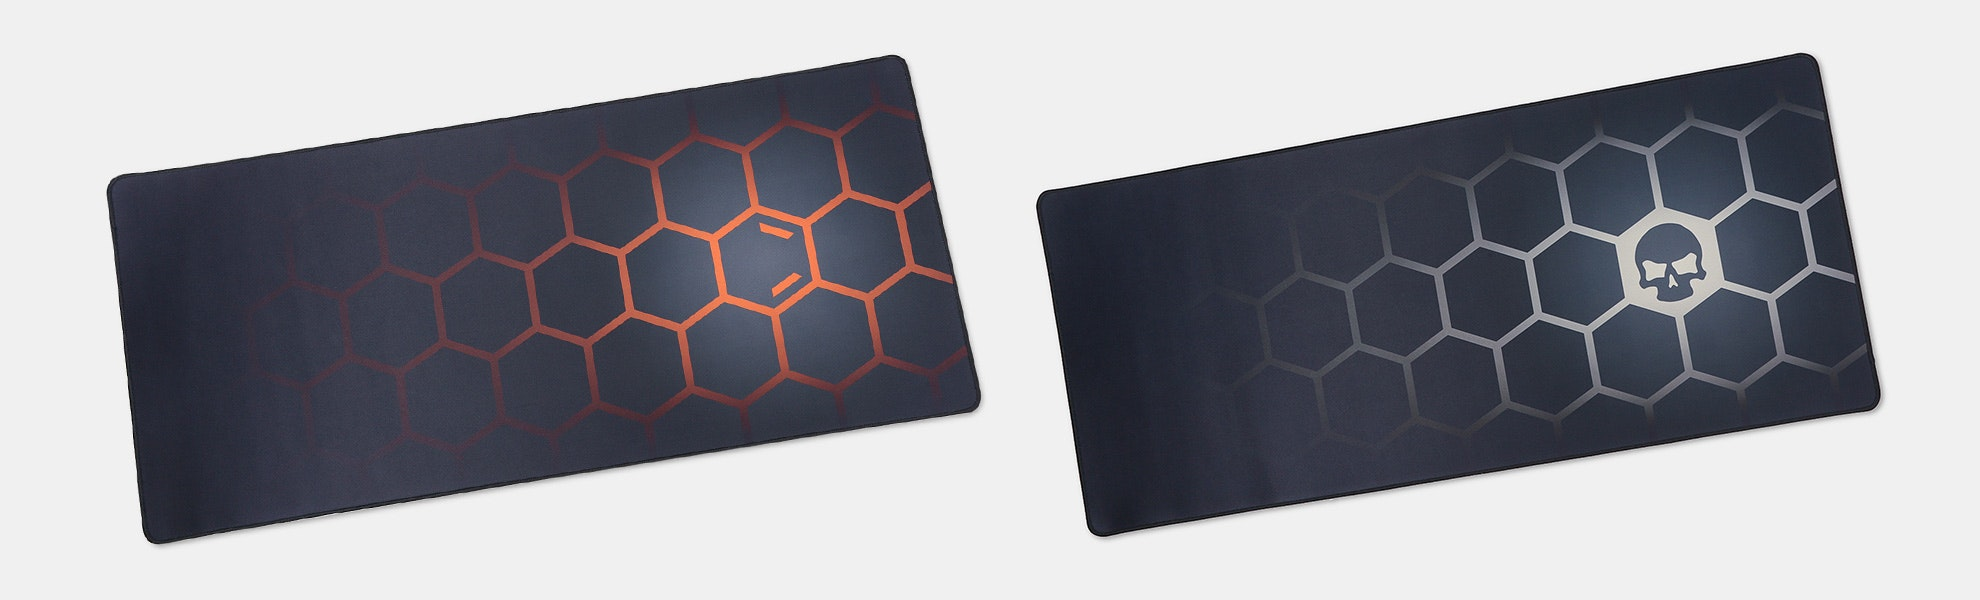 NovelKeys: T0mb3ry Carbon Desk/Mouse Mat